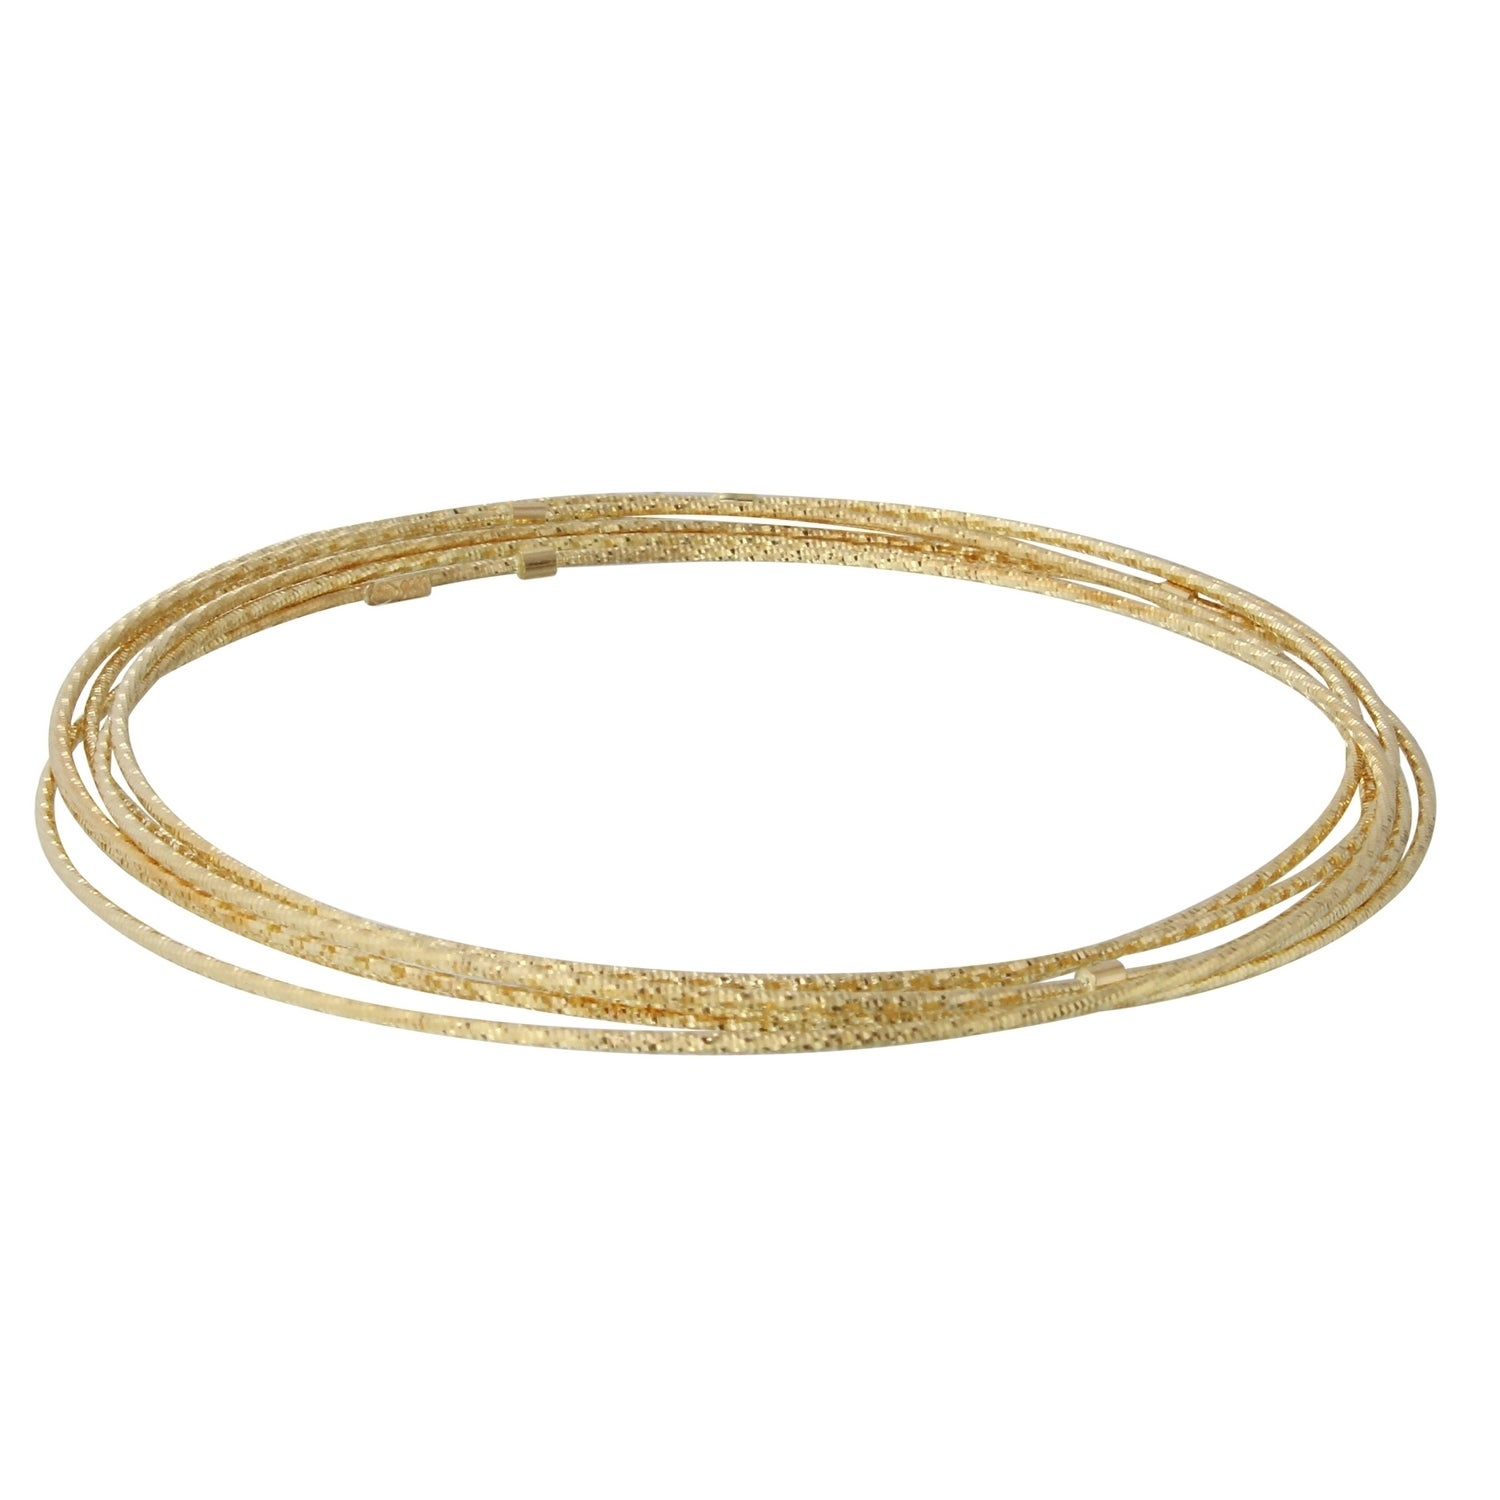 bangles gold karat bangle engraved edwardian in hand product rose bracelet bracelets